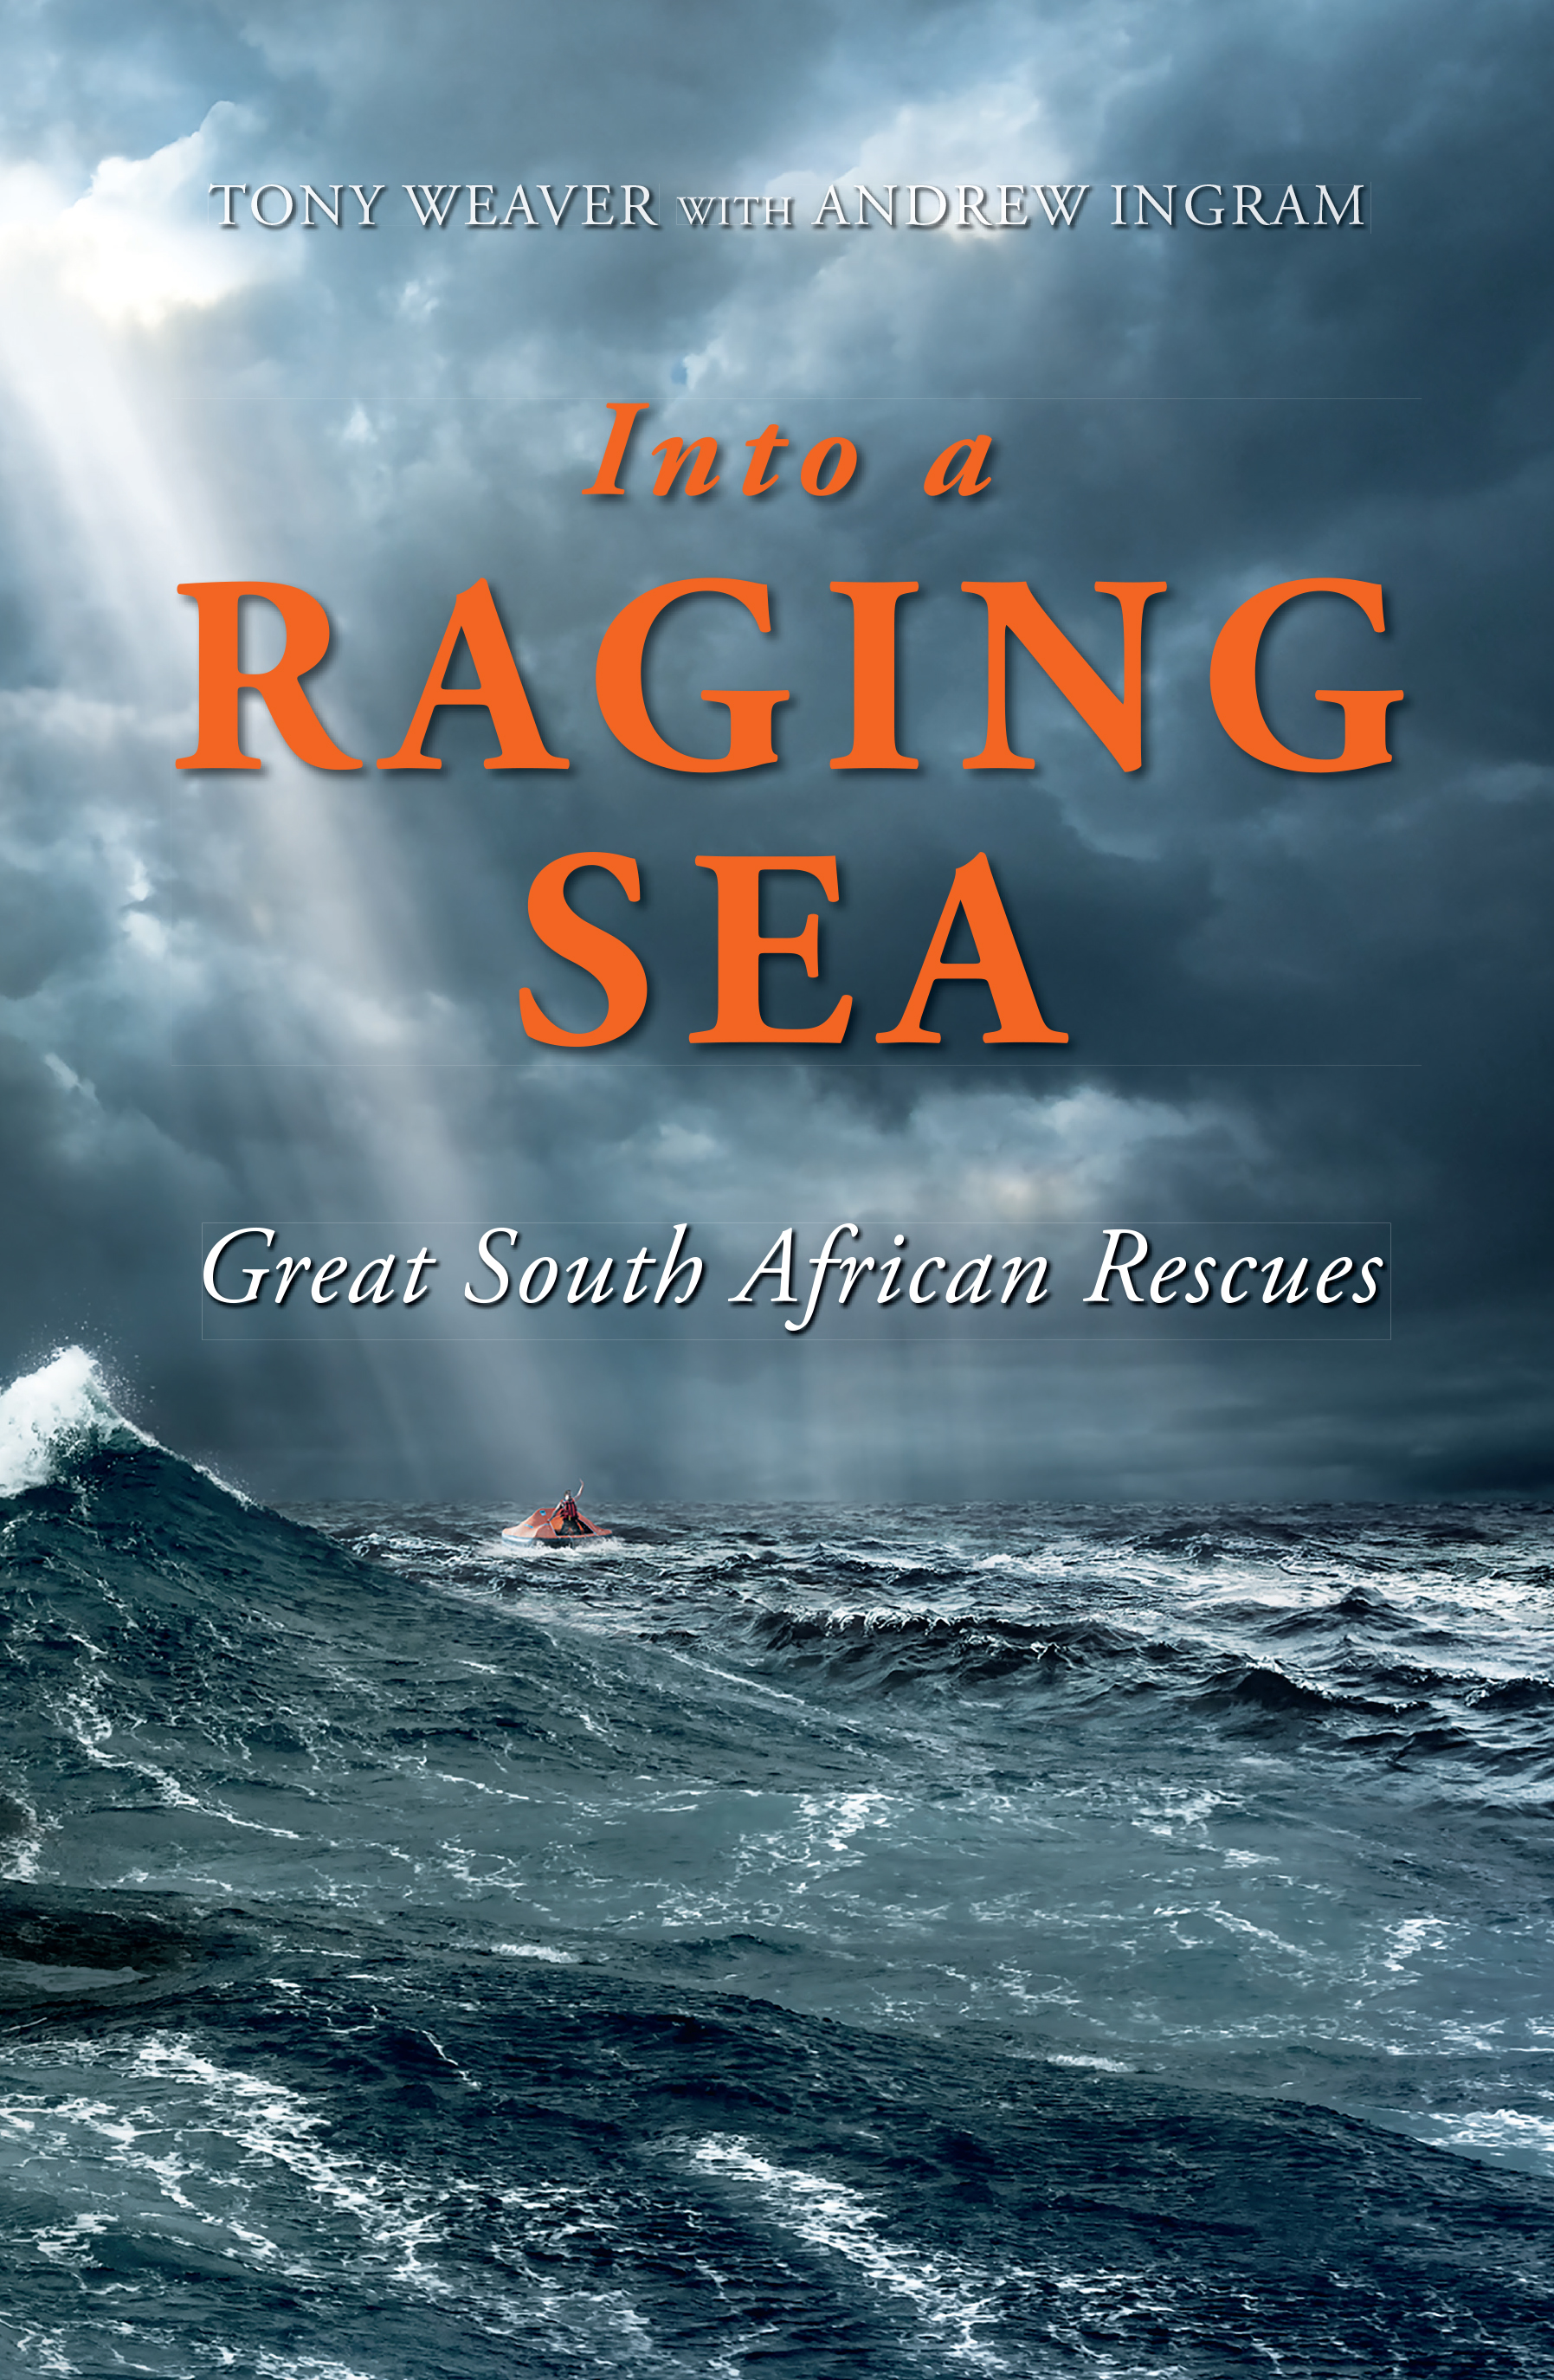 Into a raging sea 2.0 Cover.indd